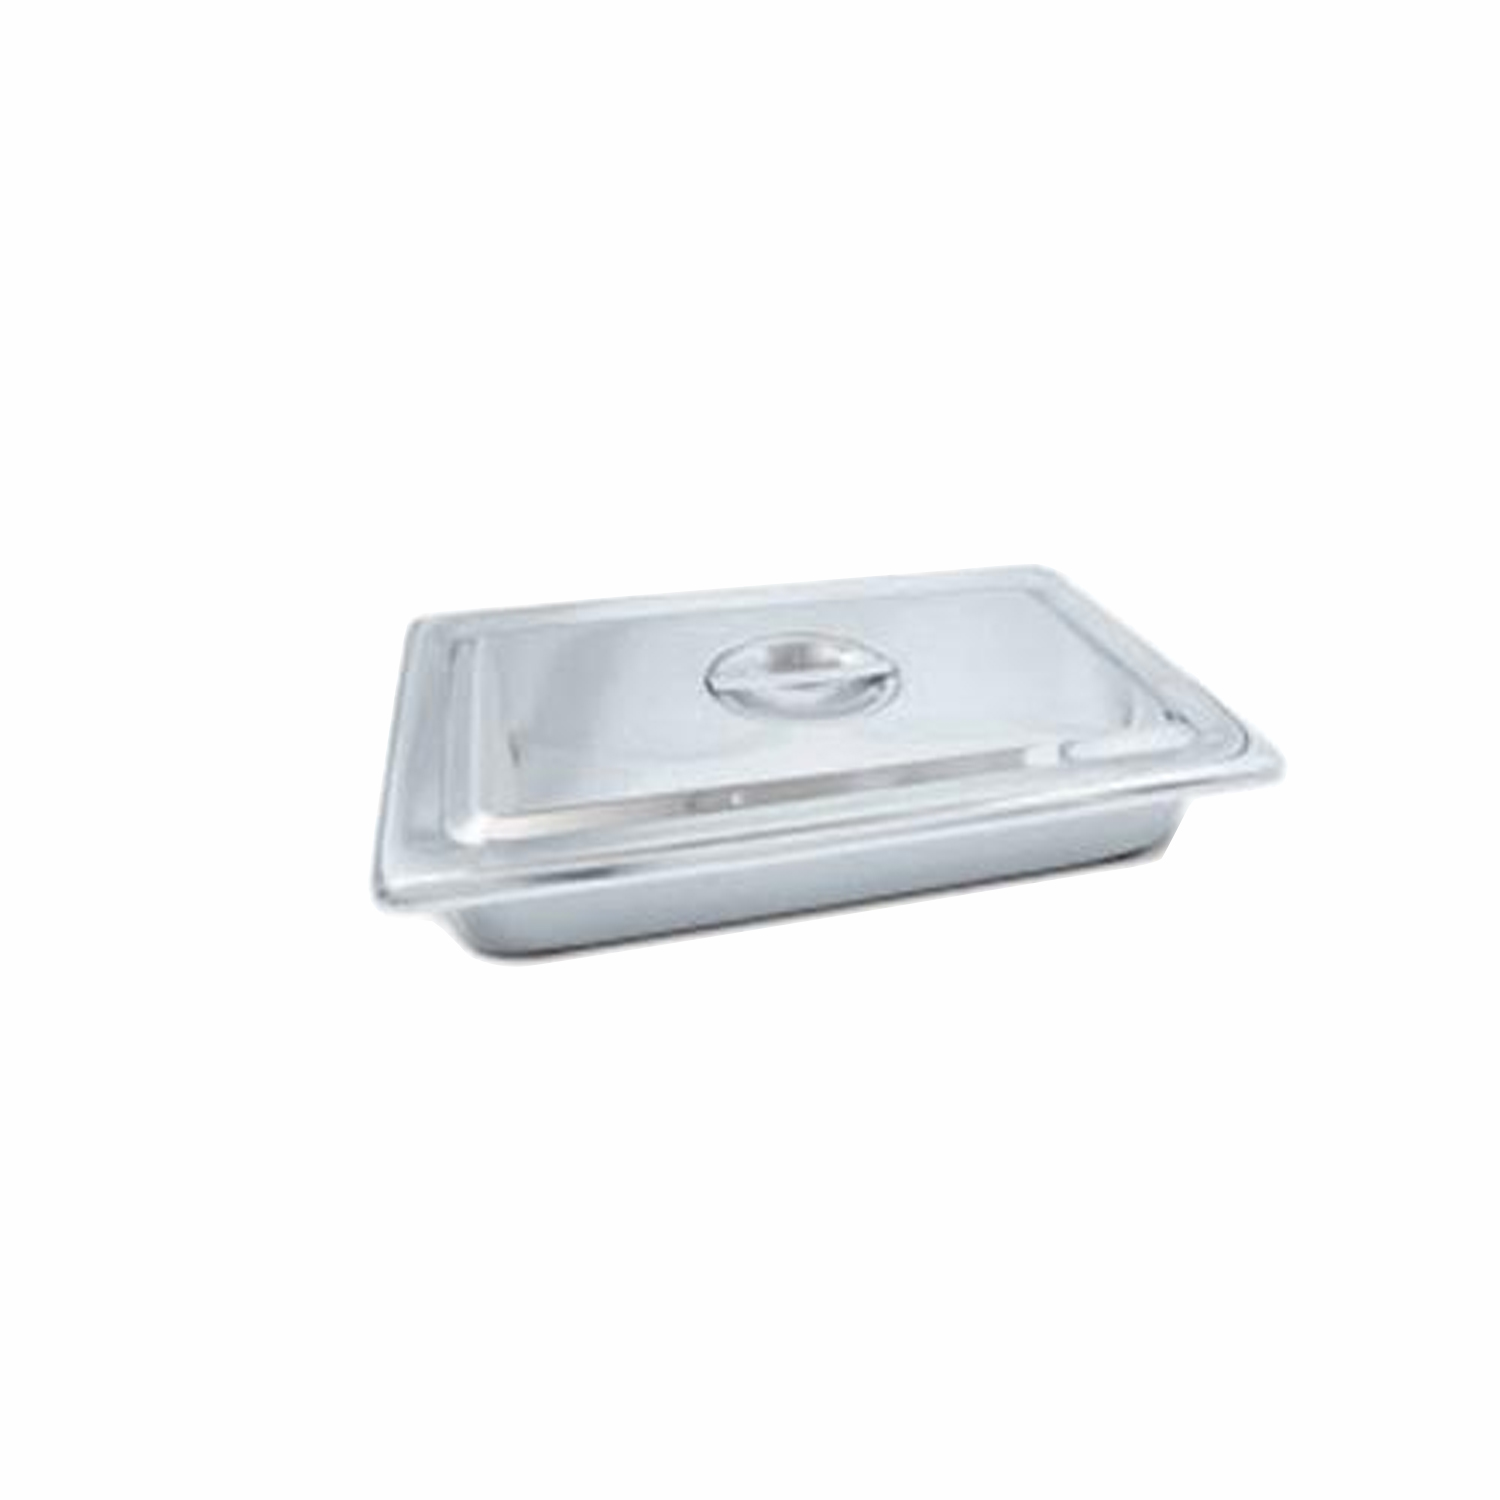 Stainless Steel Catheter and Instrument Tray